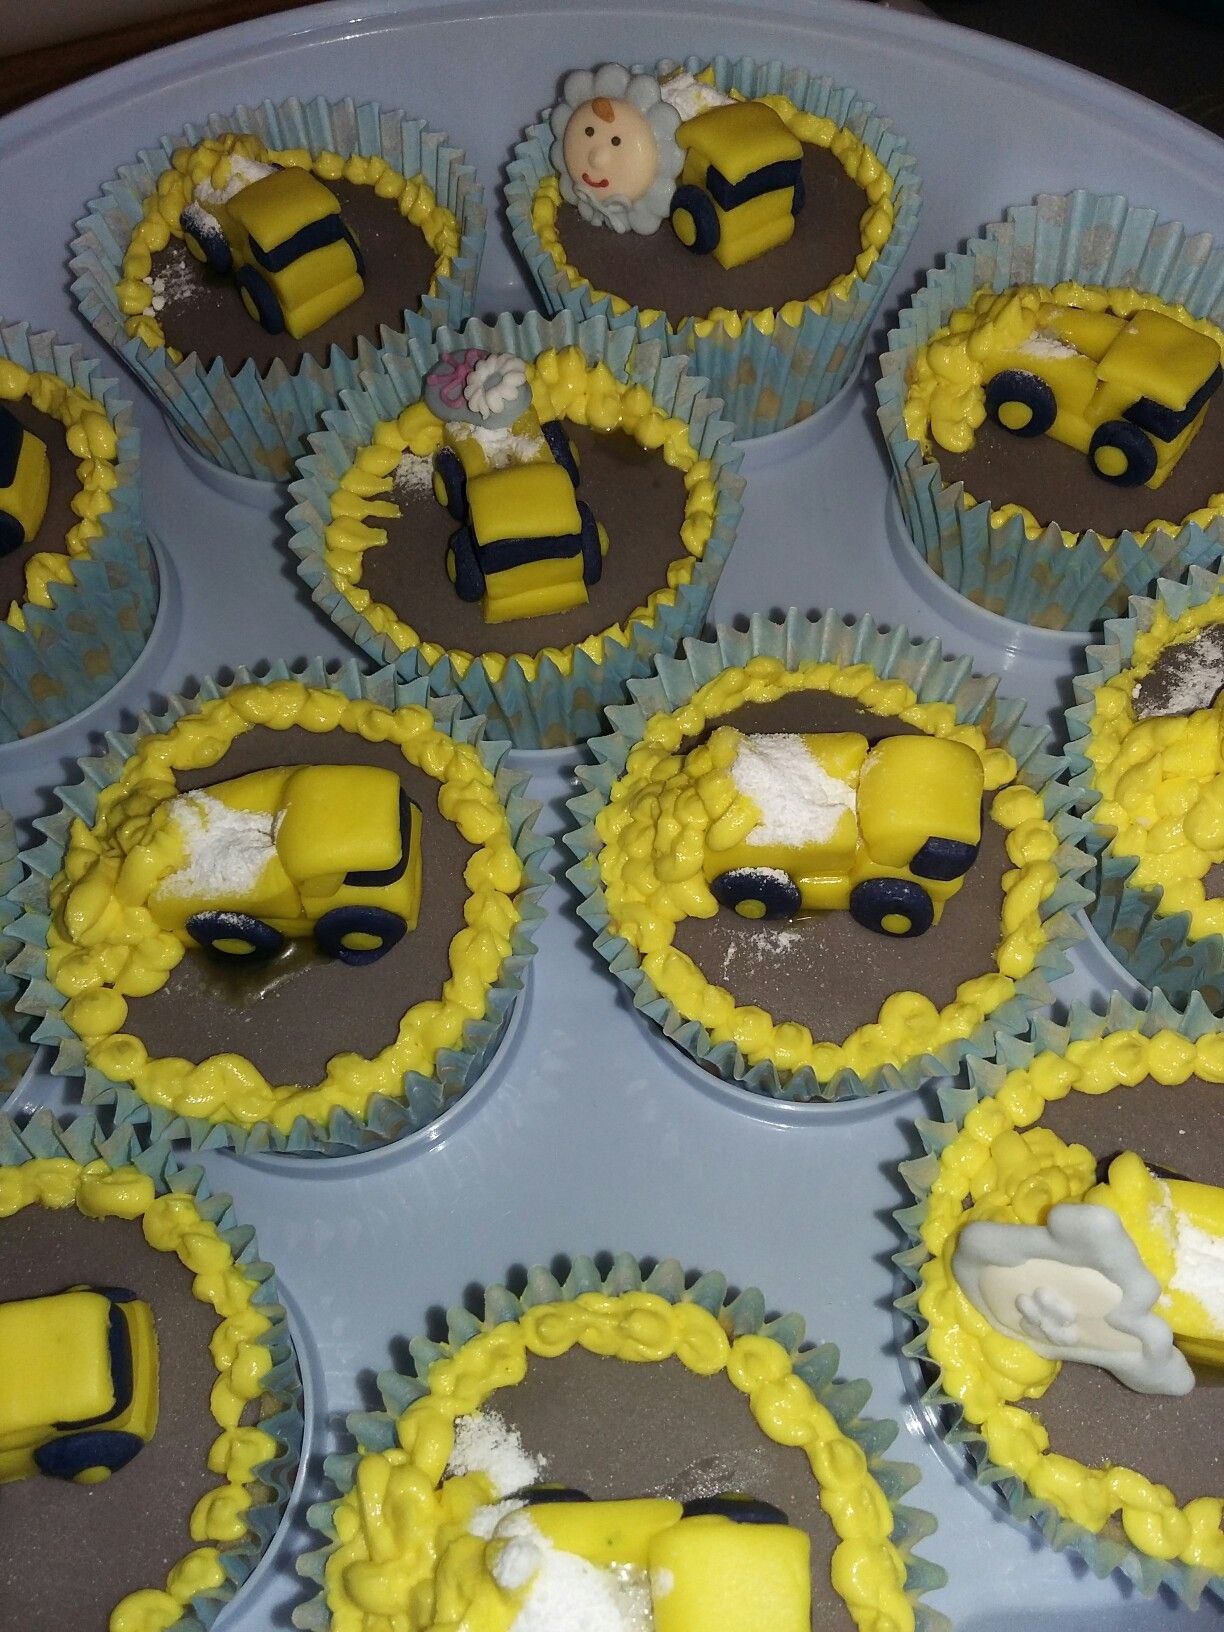 Baby shower cupcakes with a yellow digger theme for baby boy. tplh